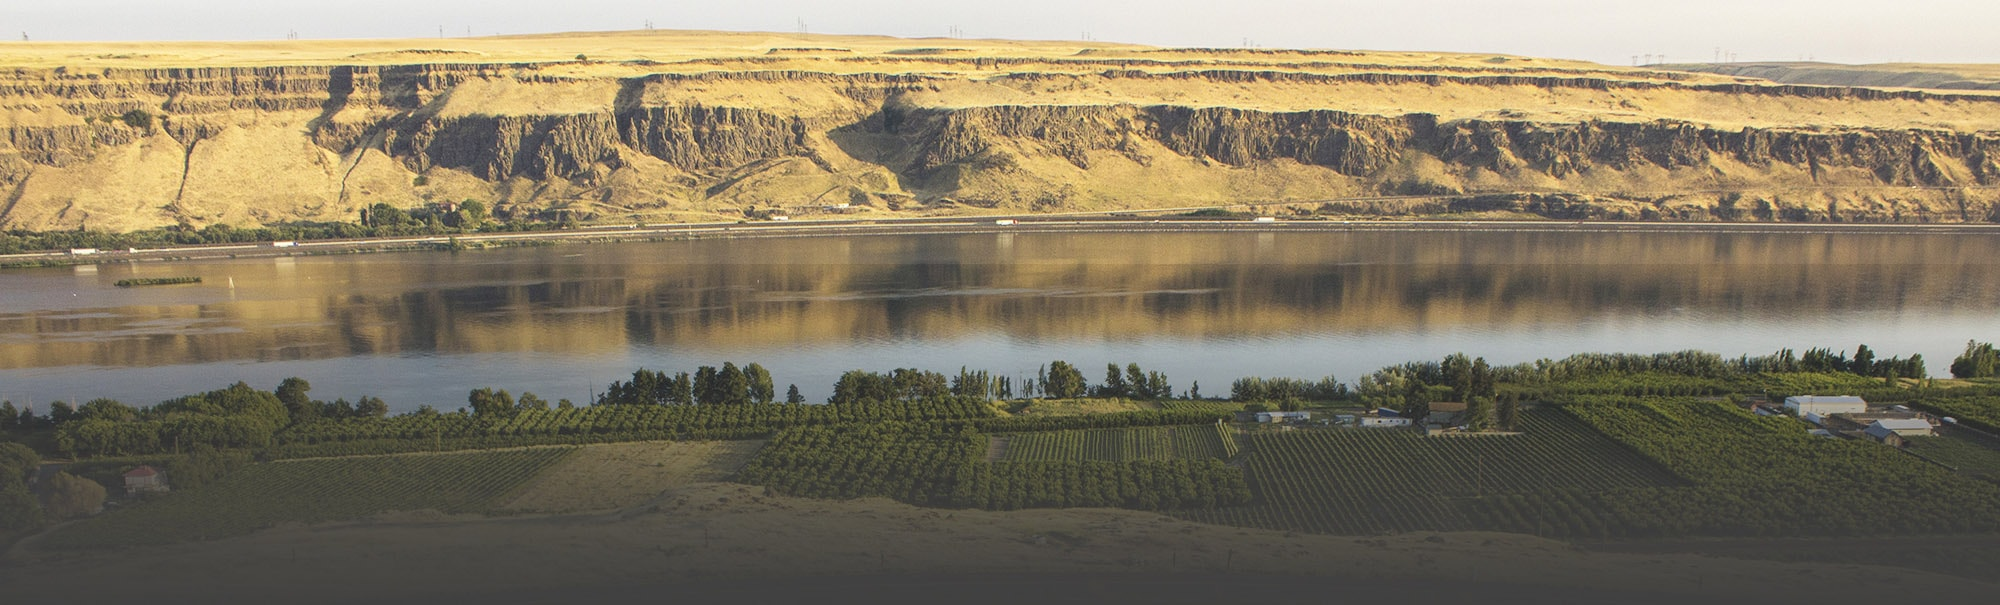 Beautiful Image of Hermiston along the Columbia River